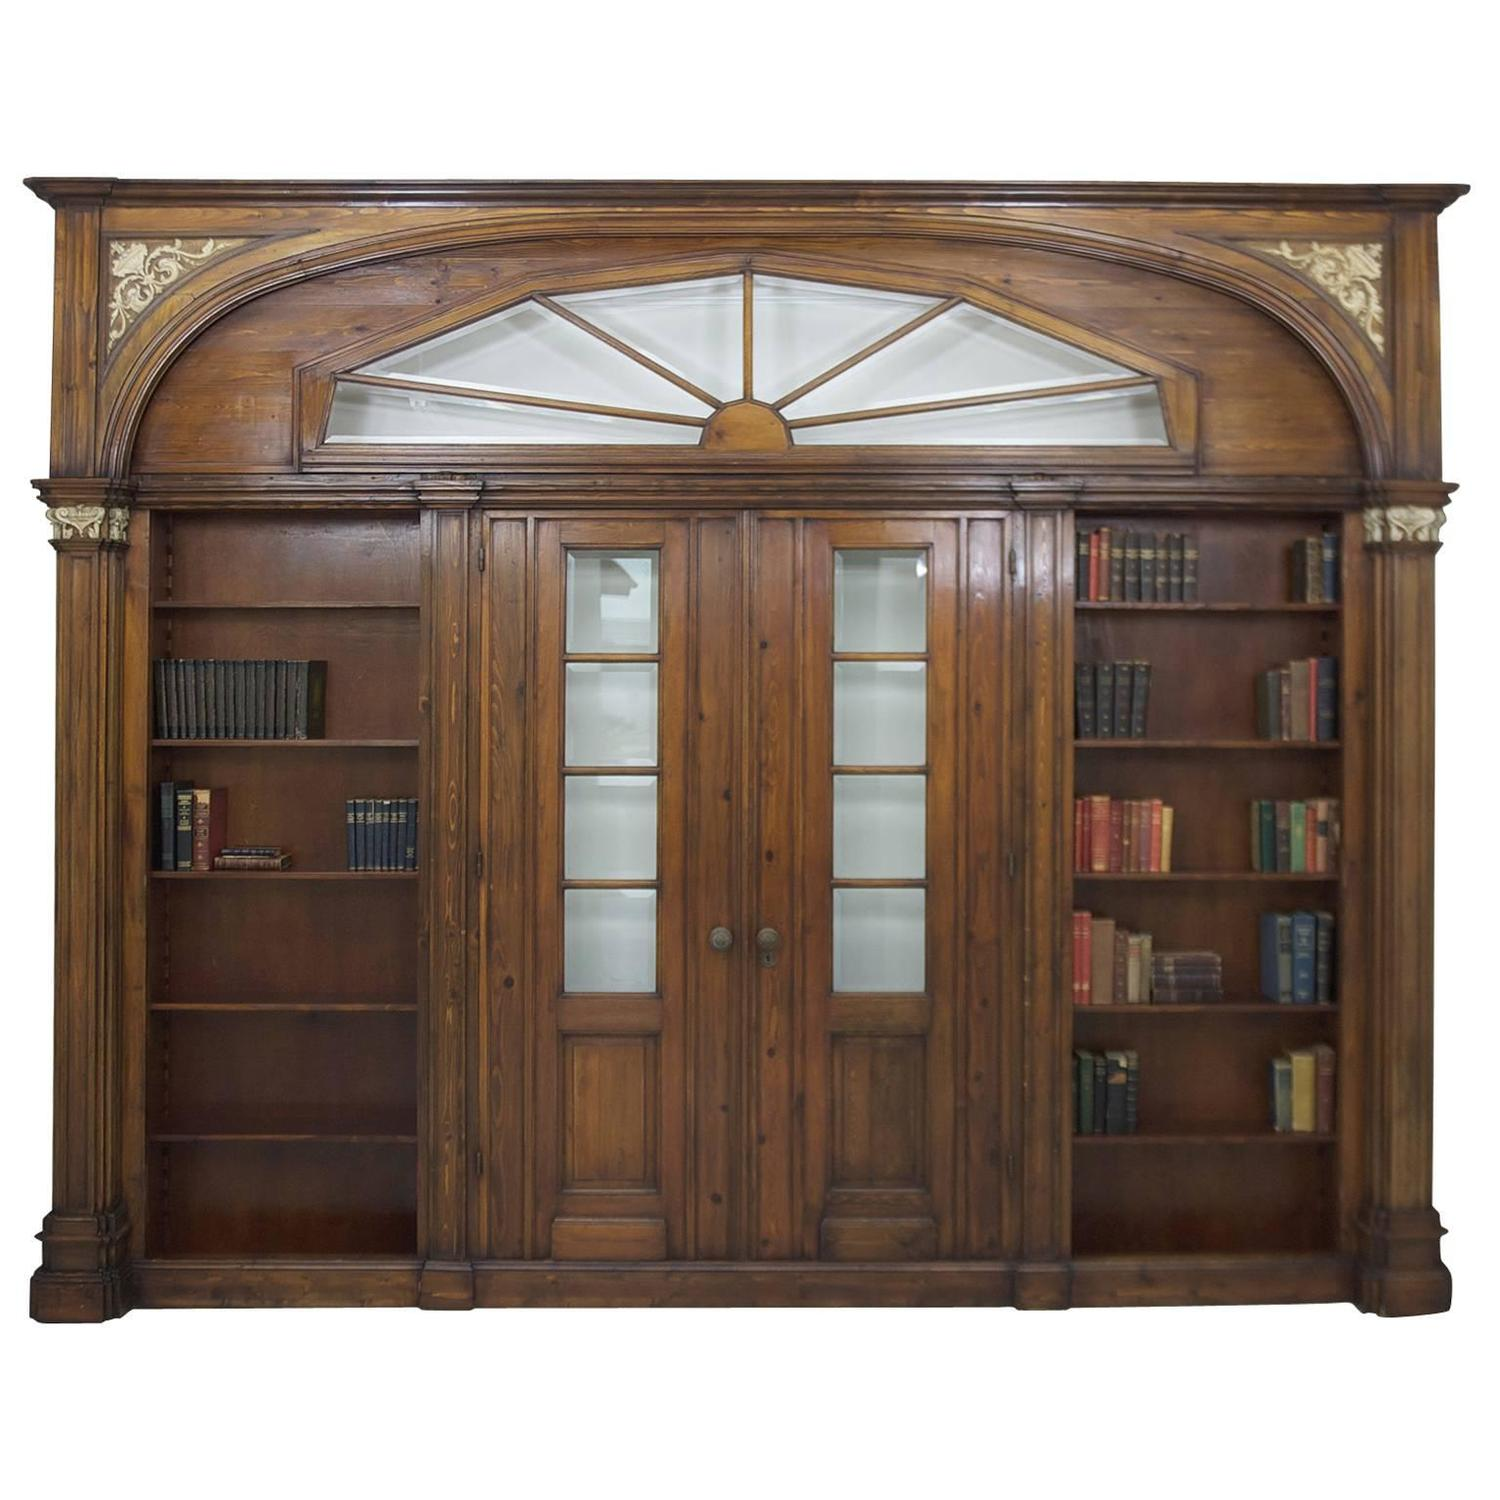 large architectural pass through with bookcases flanking two entry